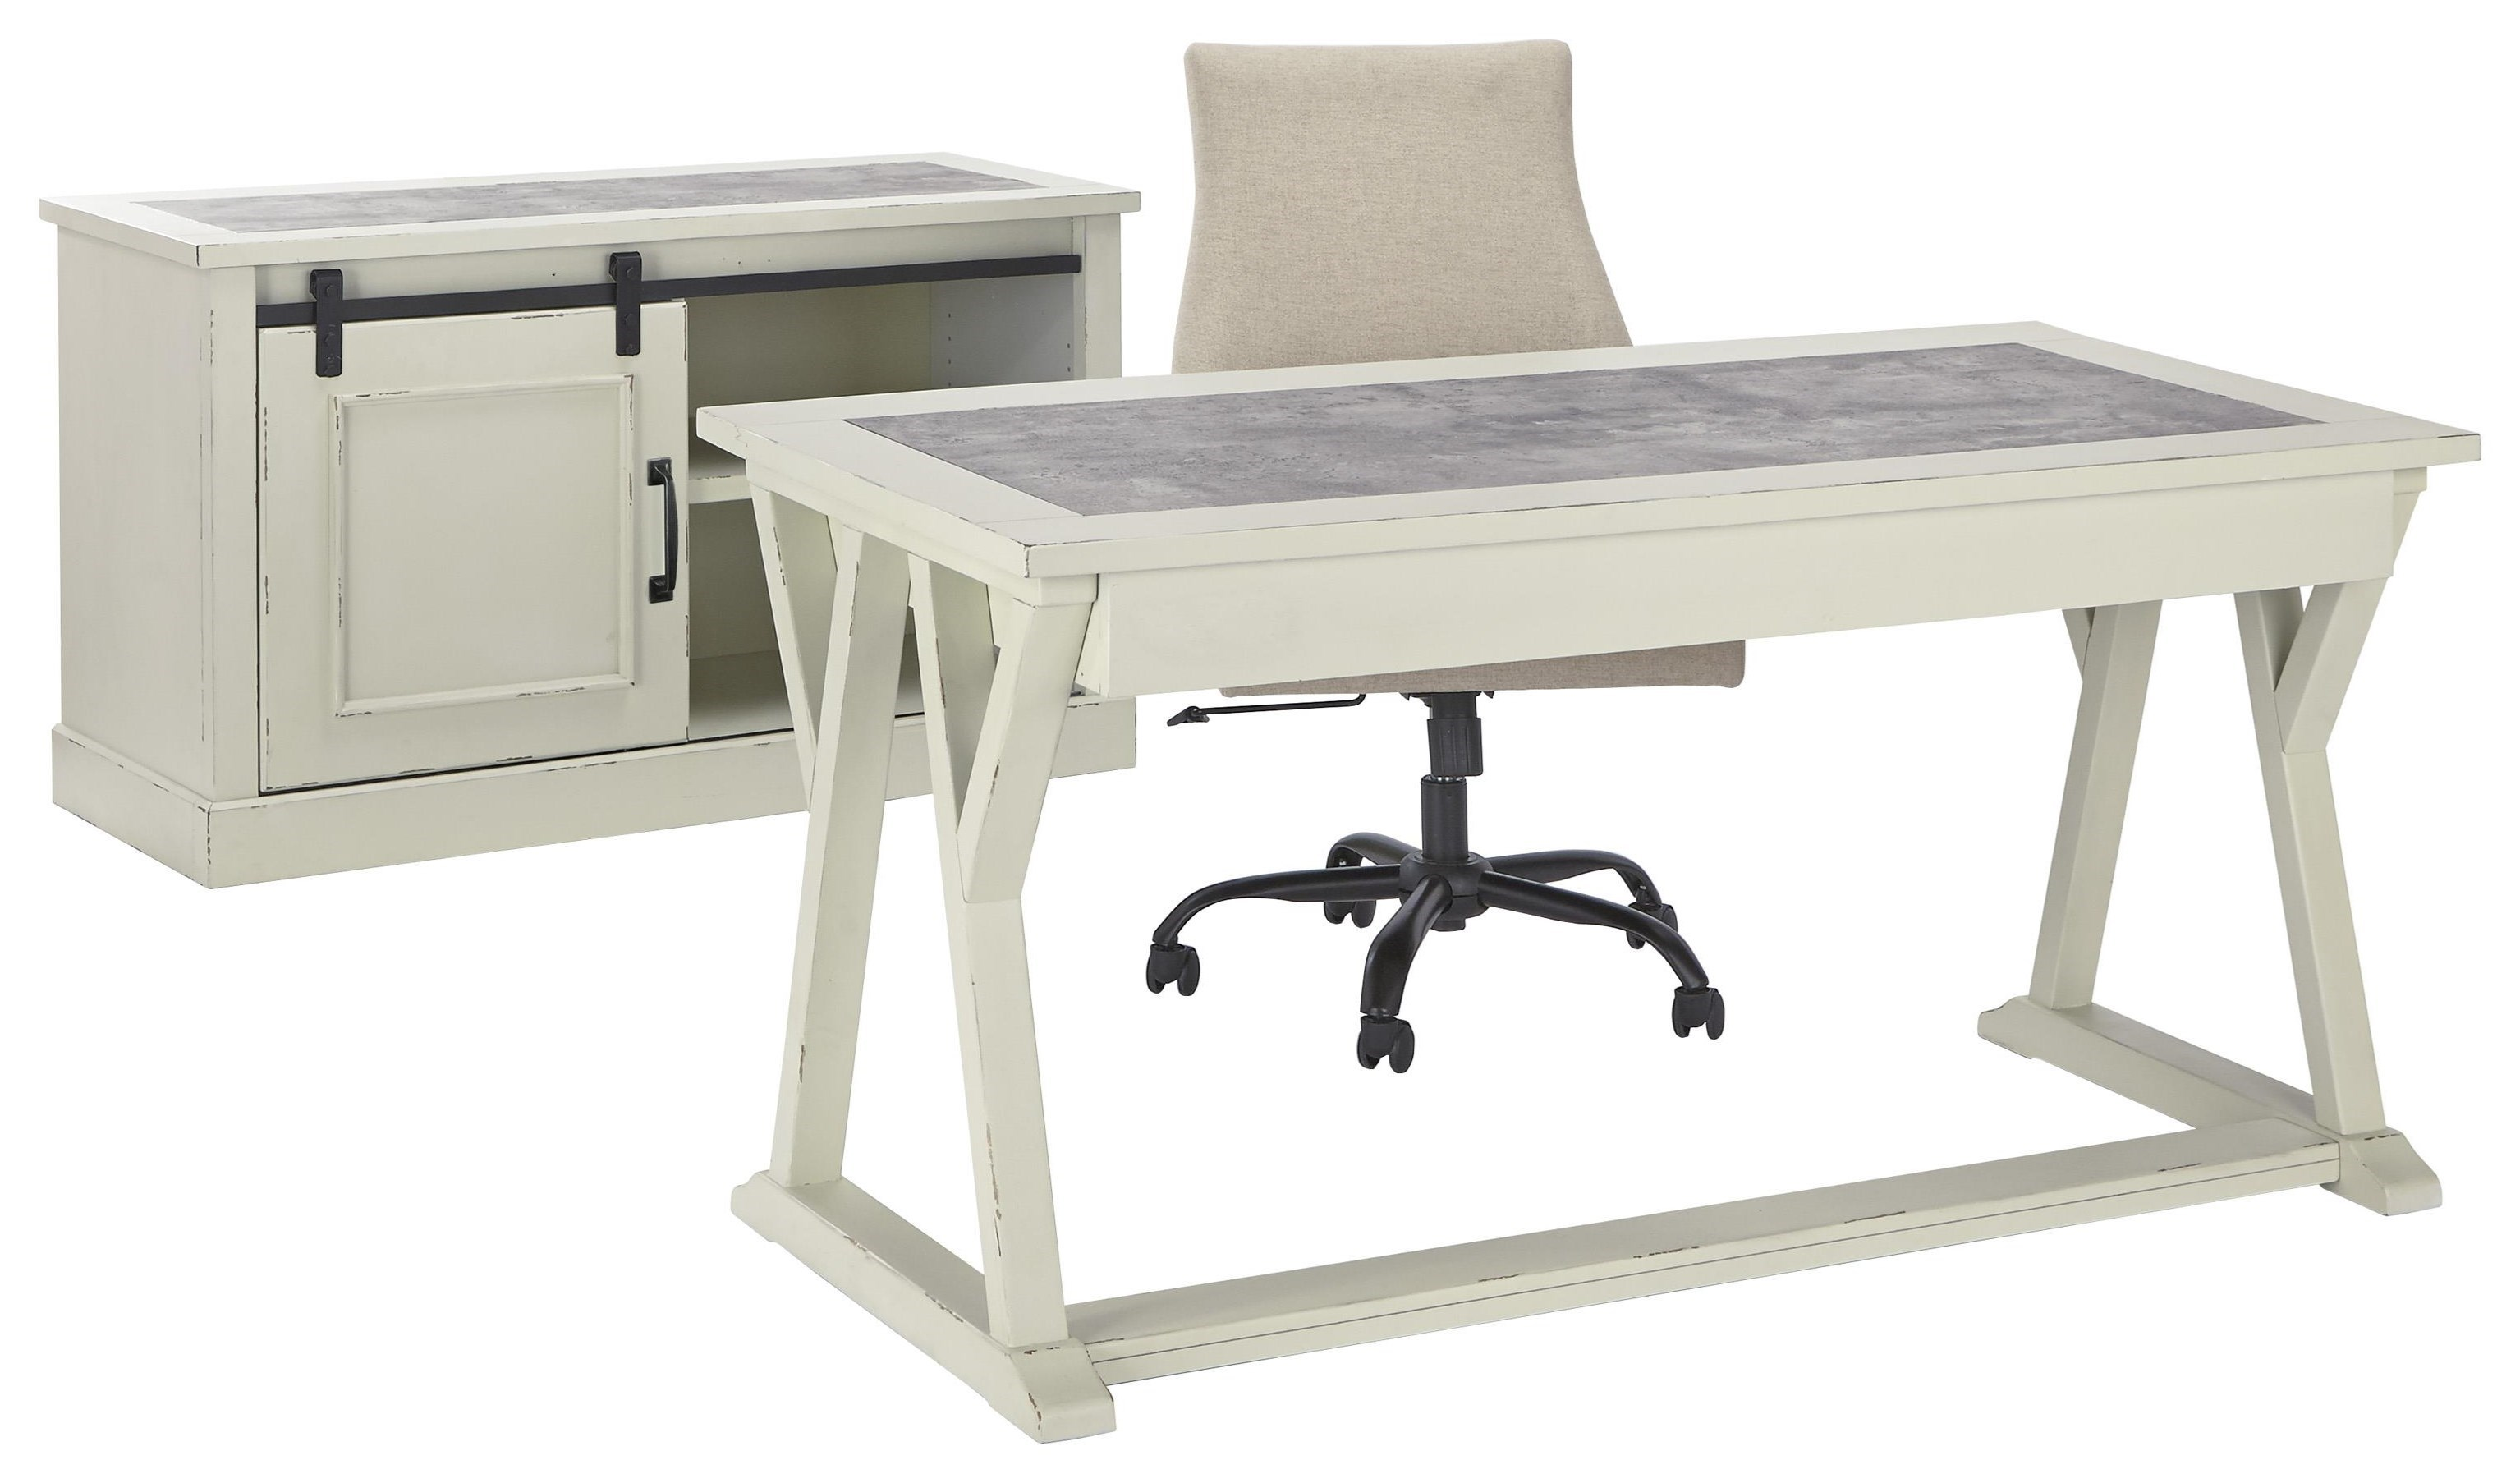 Signature Design By Ashley Jonileene H642 44 40 H200 07 Home Office Desk Office Chair And Cabinet Set Sam Levitz Furniture Office Groups